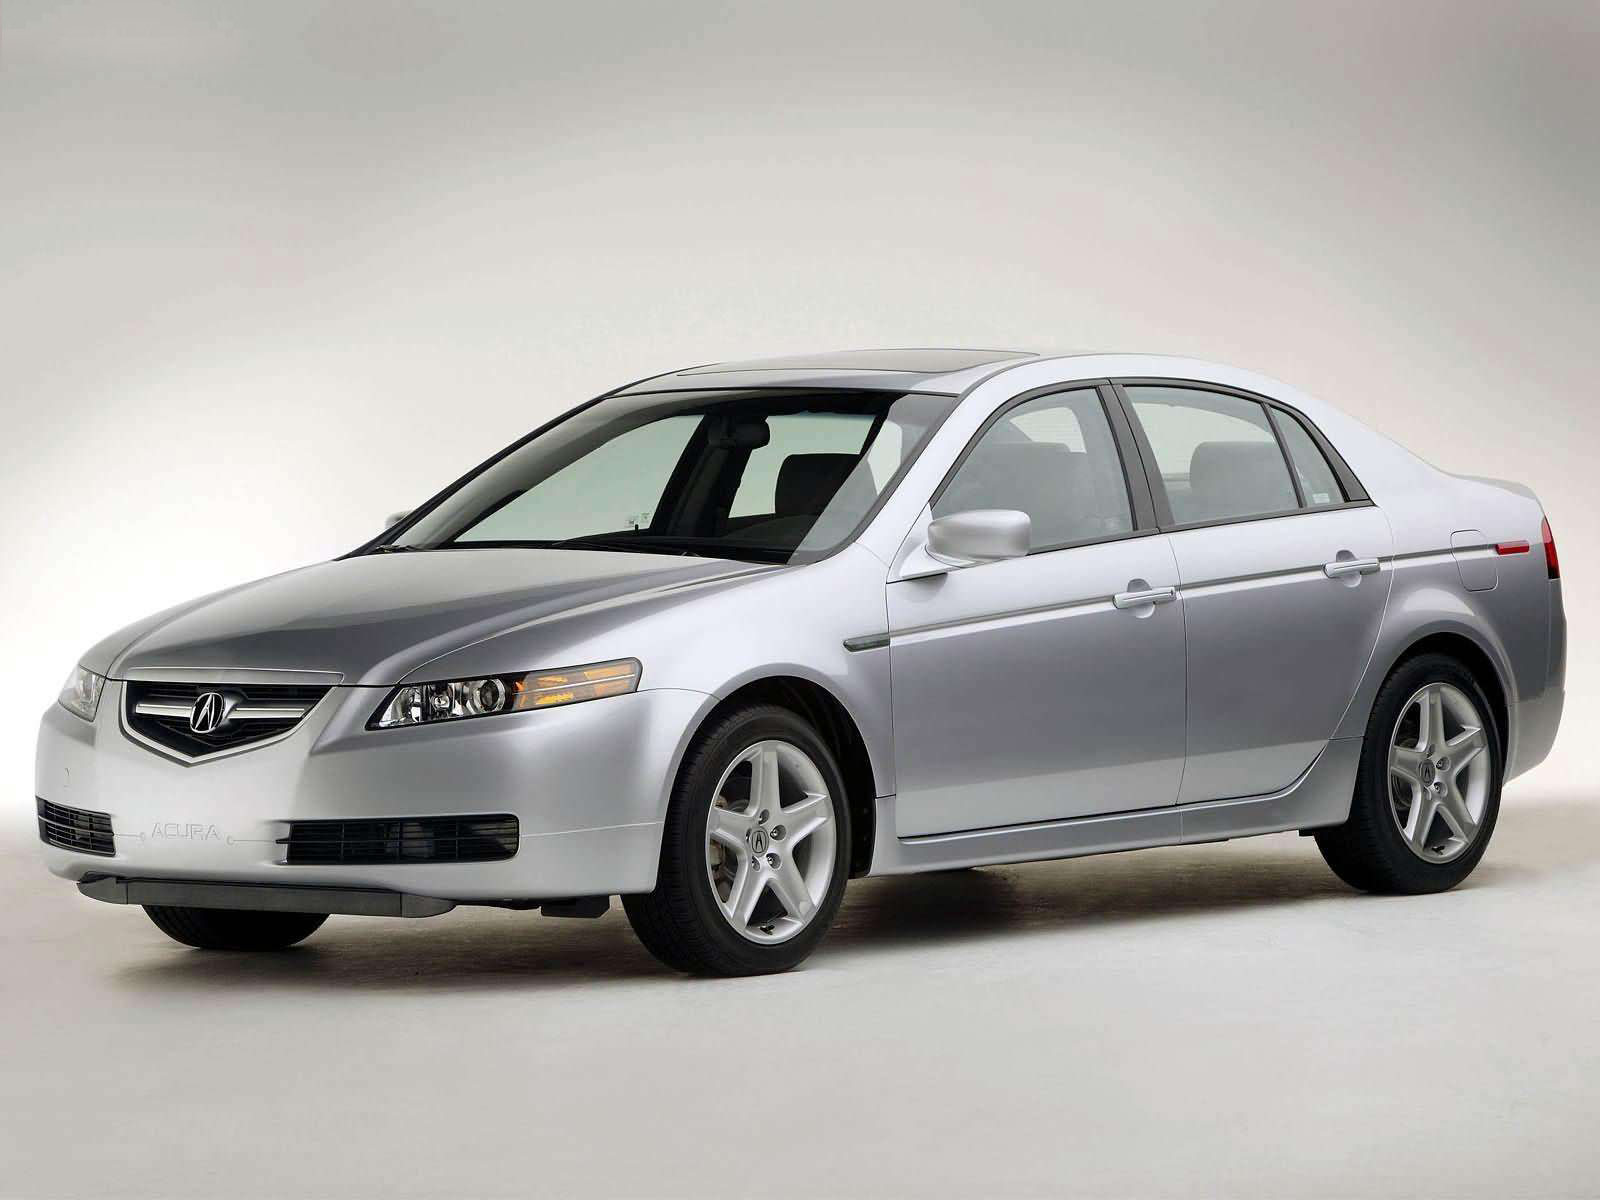 2004 Acura 32 Tl Auto Insurancermation HD Wallpapers Download free images and photos [musssic.tk]